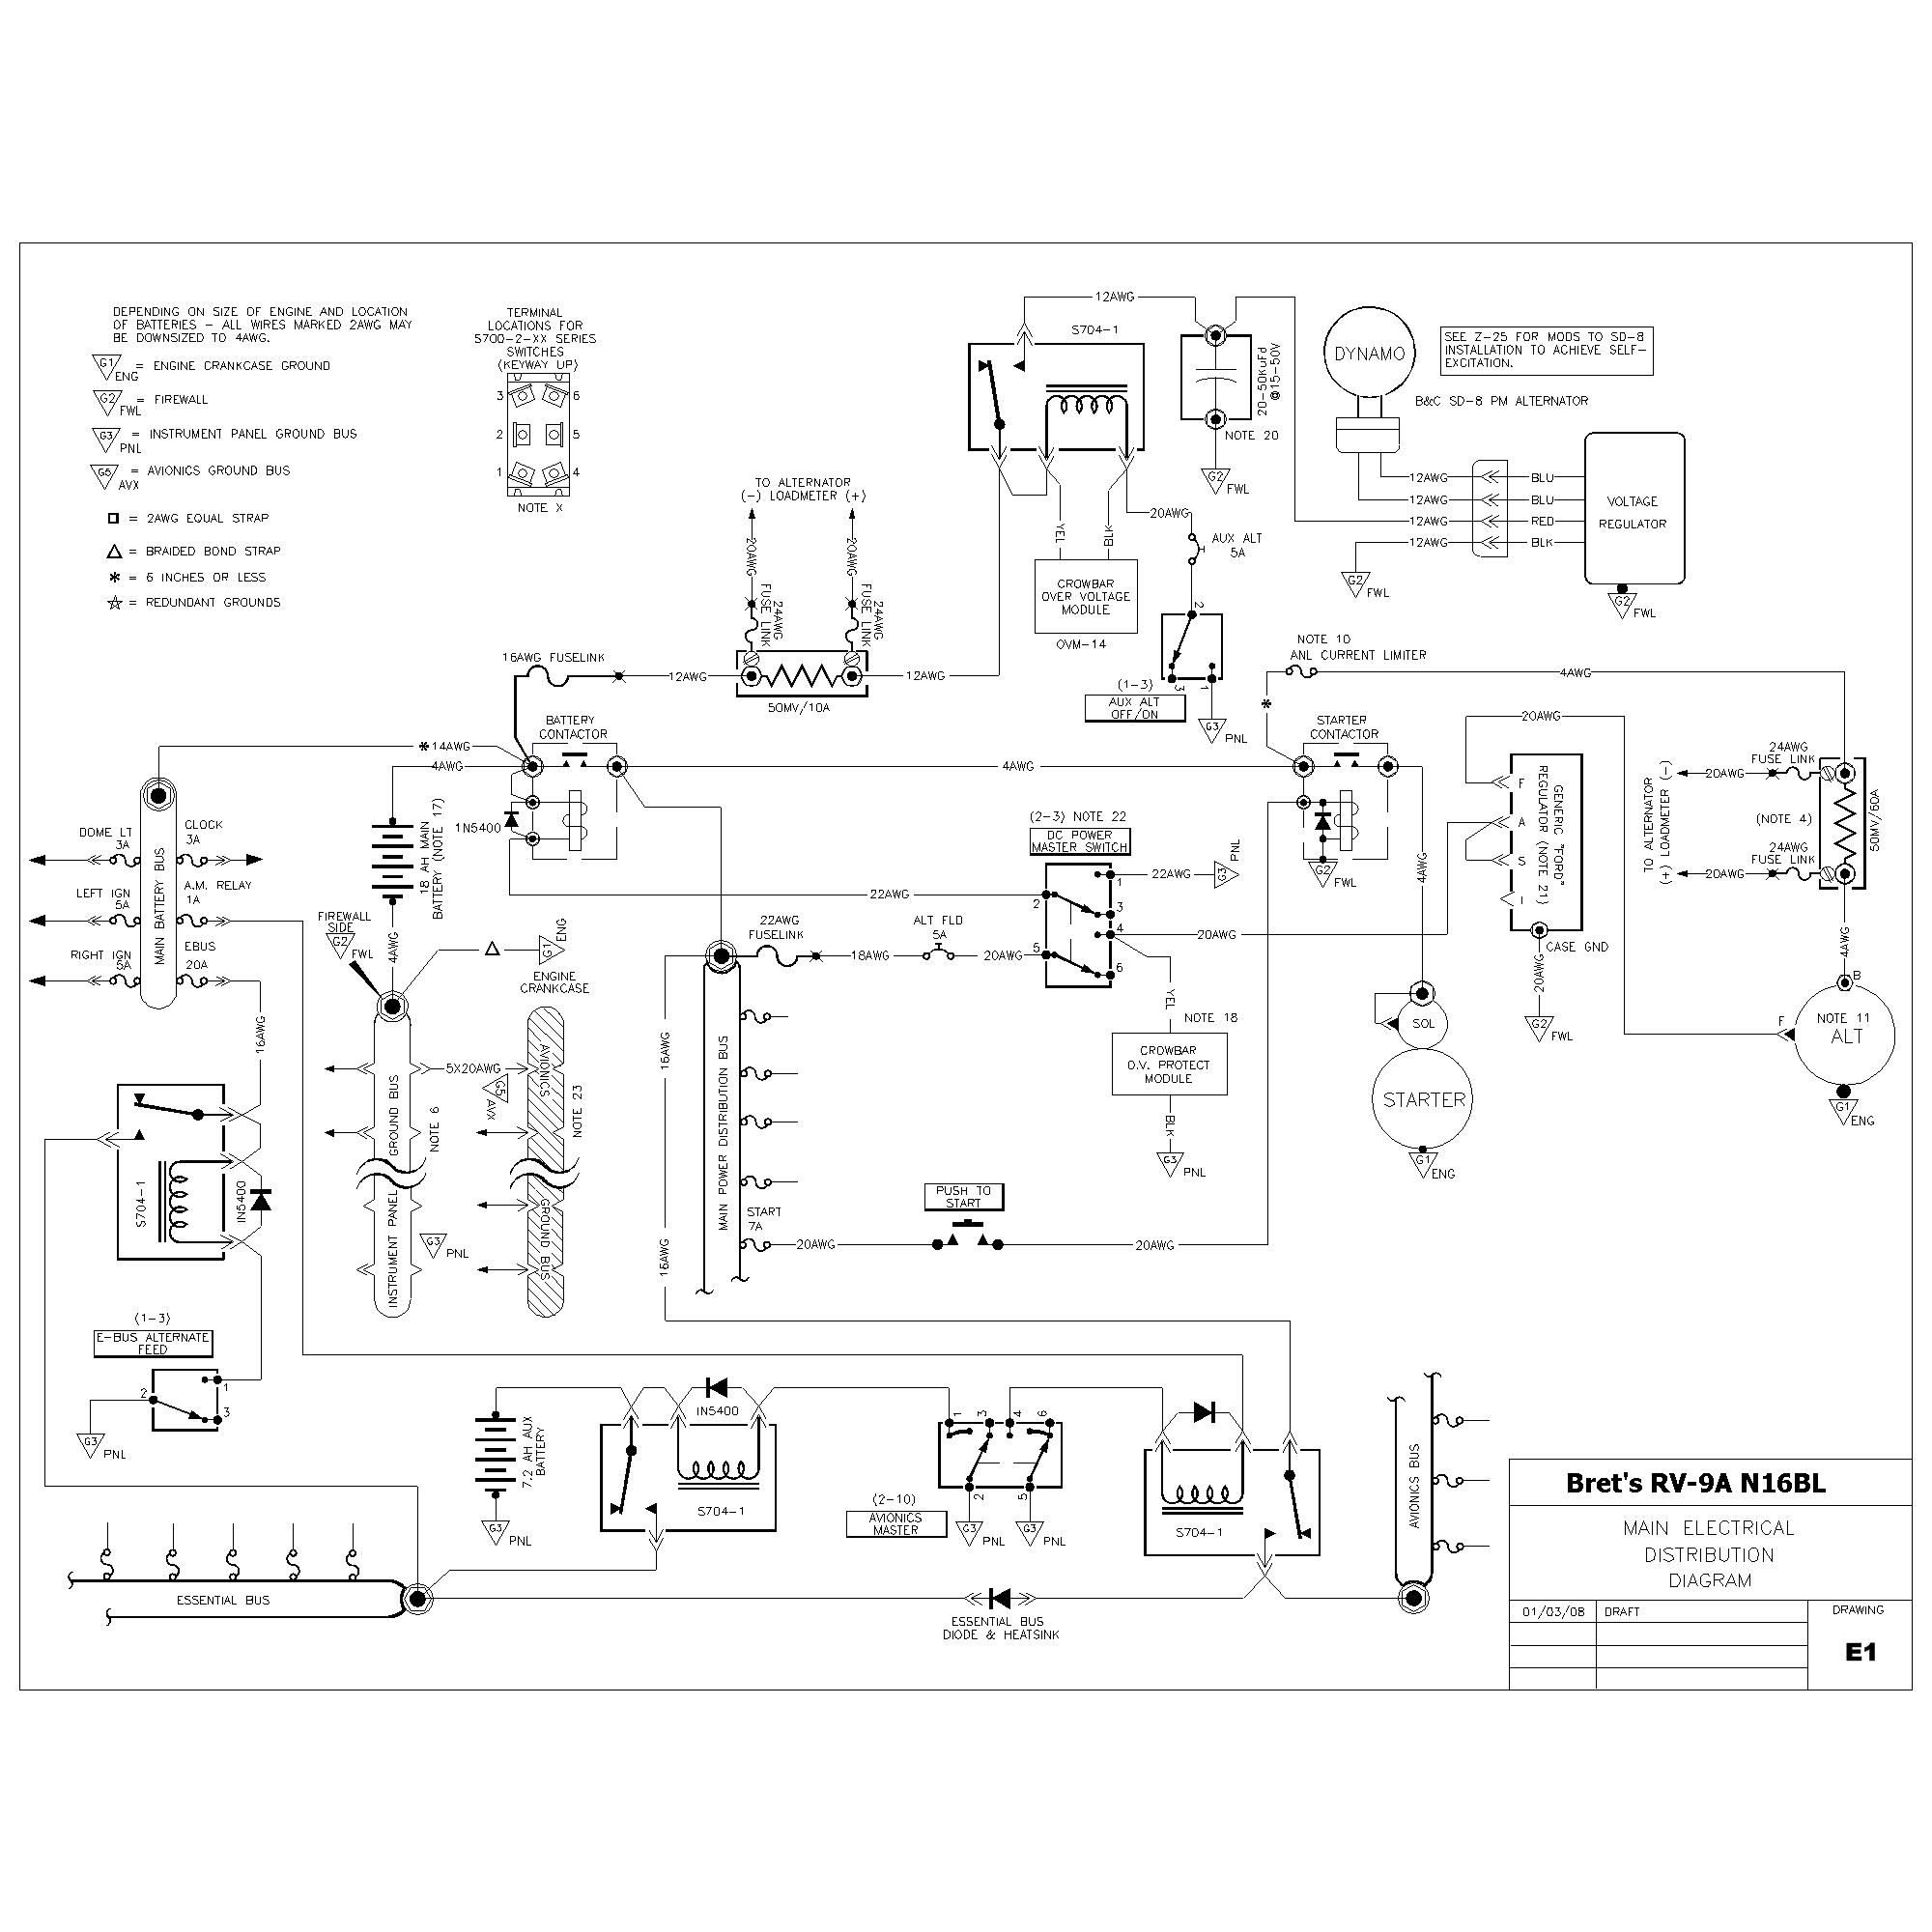 Cessna 150 Wiring Diagram | Wiring Diagrams on construction diagrams, basic wiring for dummies, basic electronics diagrams, basic wiring techniques, basic wiring symbols, basic wiring fan, basic lens diagrams, communication diagrams, basic blueprints, basic wiring light, basic schematics, basic engine diagrams, basic wiring riding mower, landscaping diagrams, basic hvac diagrams, basic wiring layout, basic wiring of ac motor, basic dimensions, basic plug wiring, motor control diagrams,